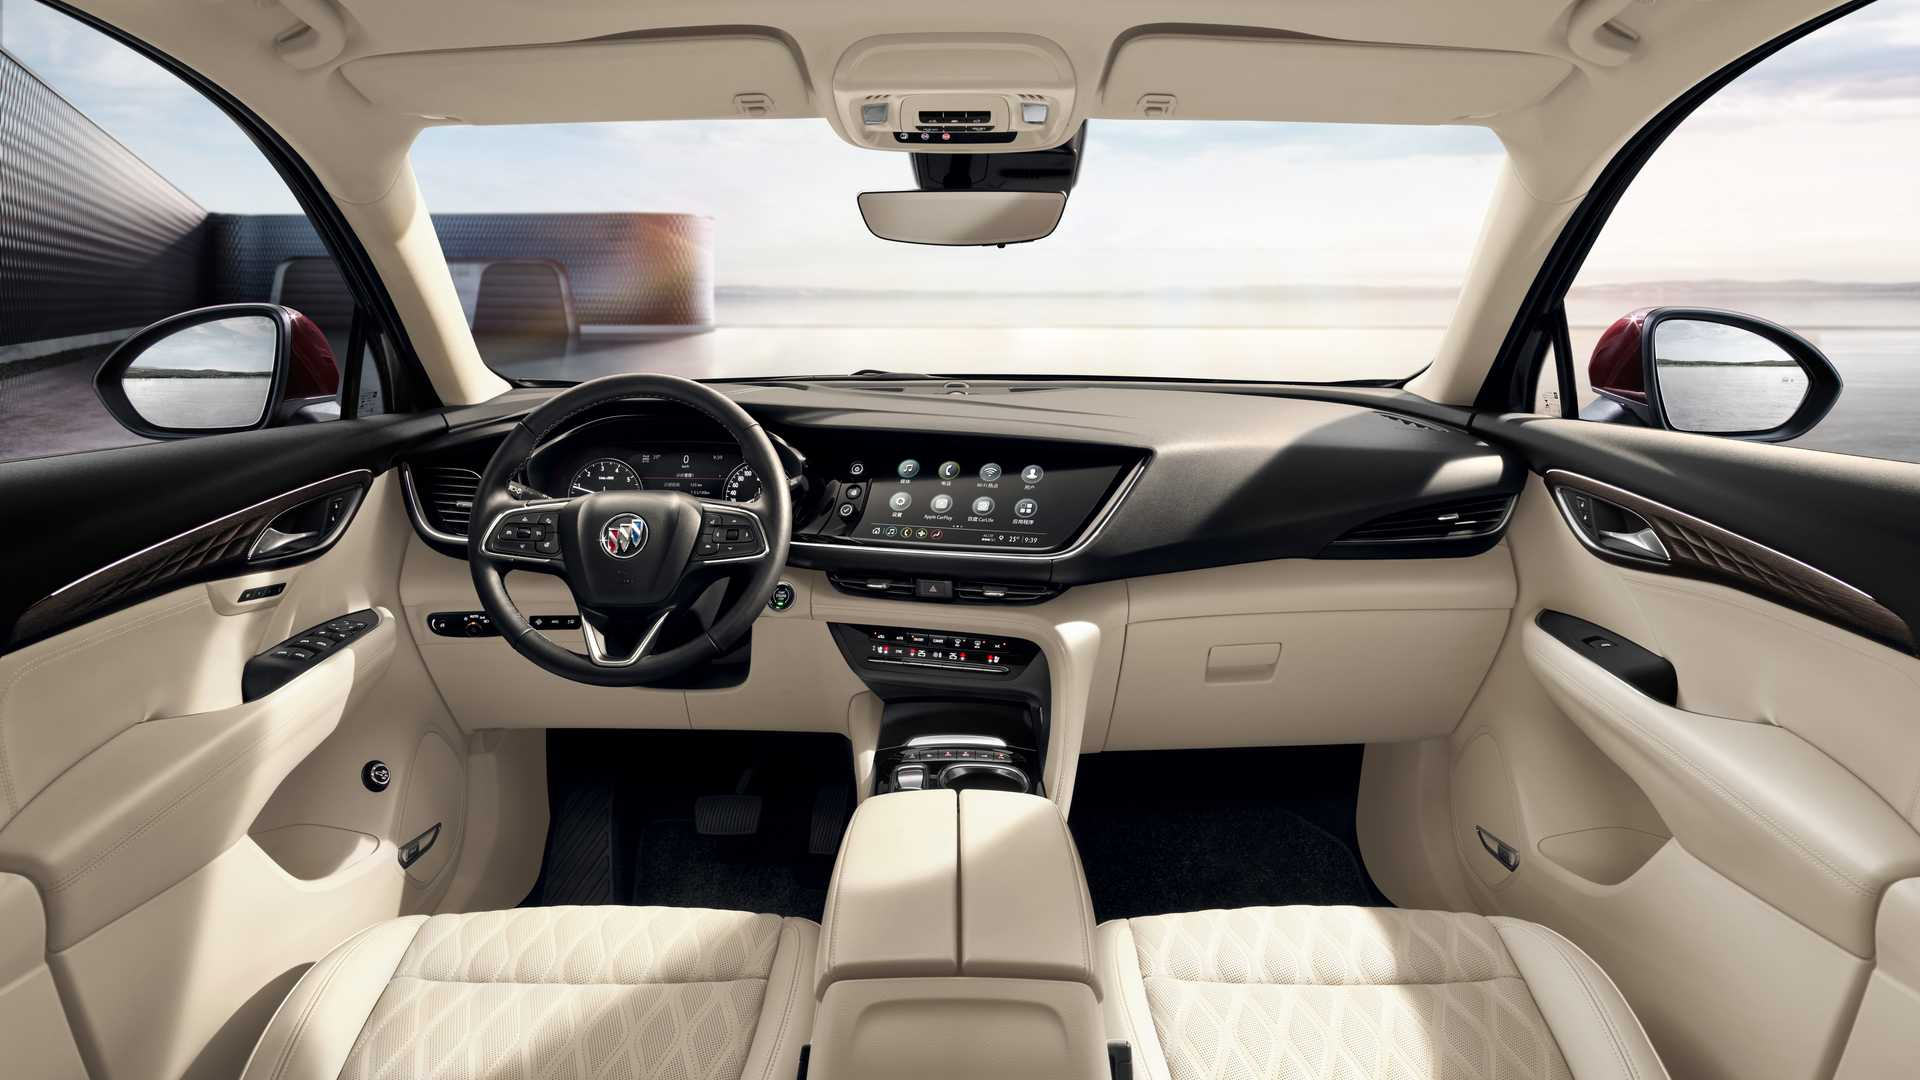 2021 Buick Envision Reveals Sophisticated Interior In 2021 Buick Envision Hp, Incentives, Infotainment Manual